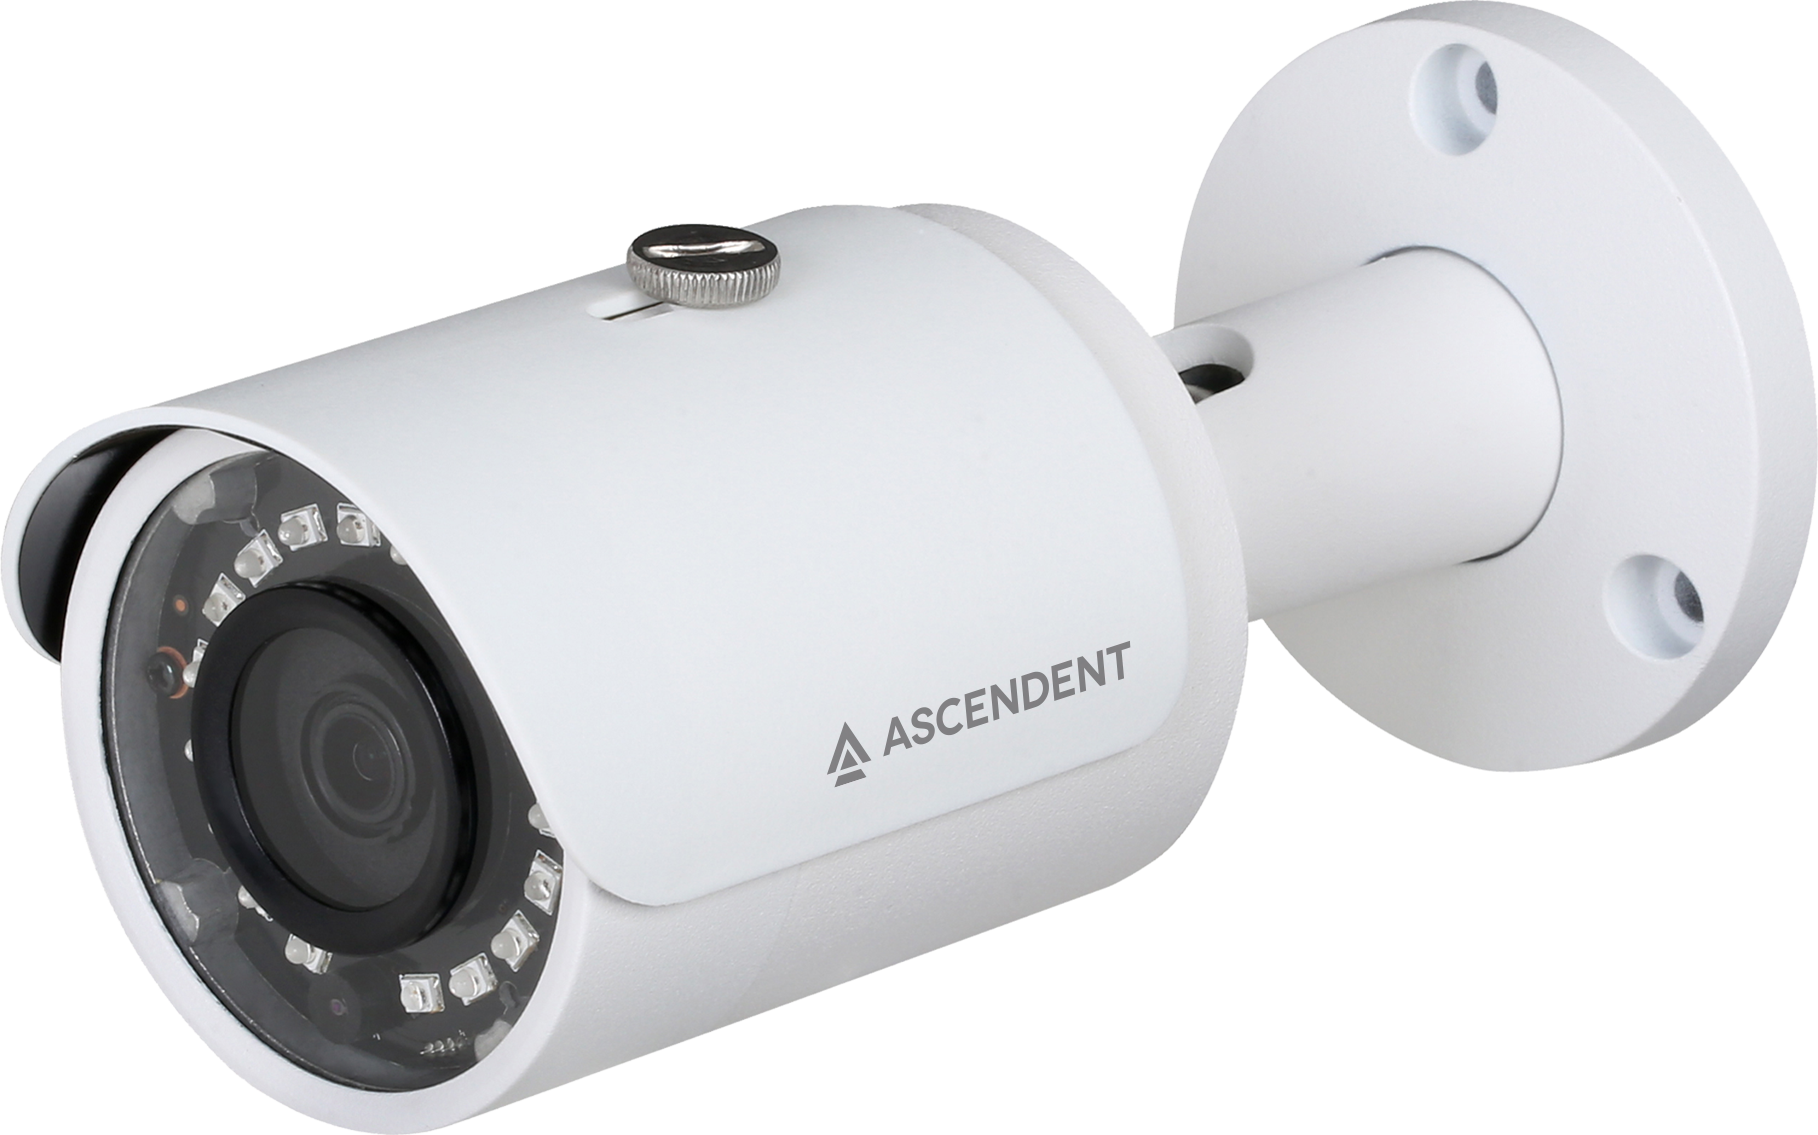 Ascendent 4MP Mini Bullet IR Camera w/AVA Video Analytics and Face